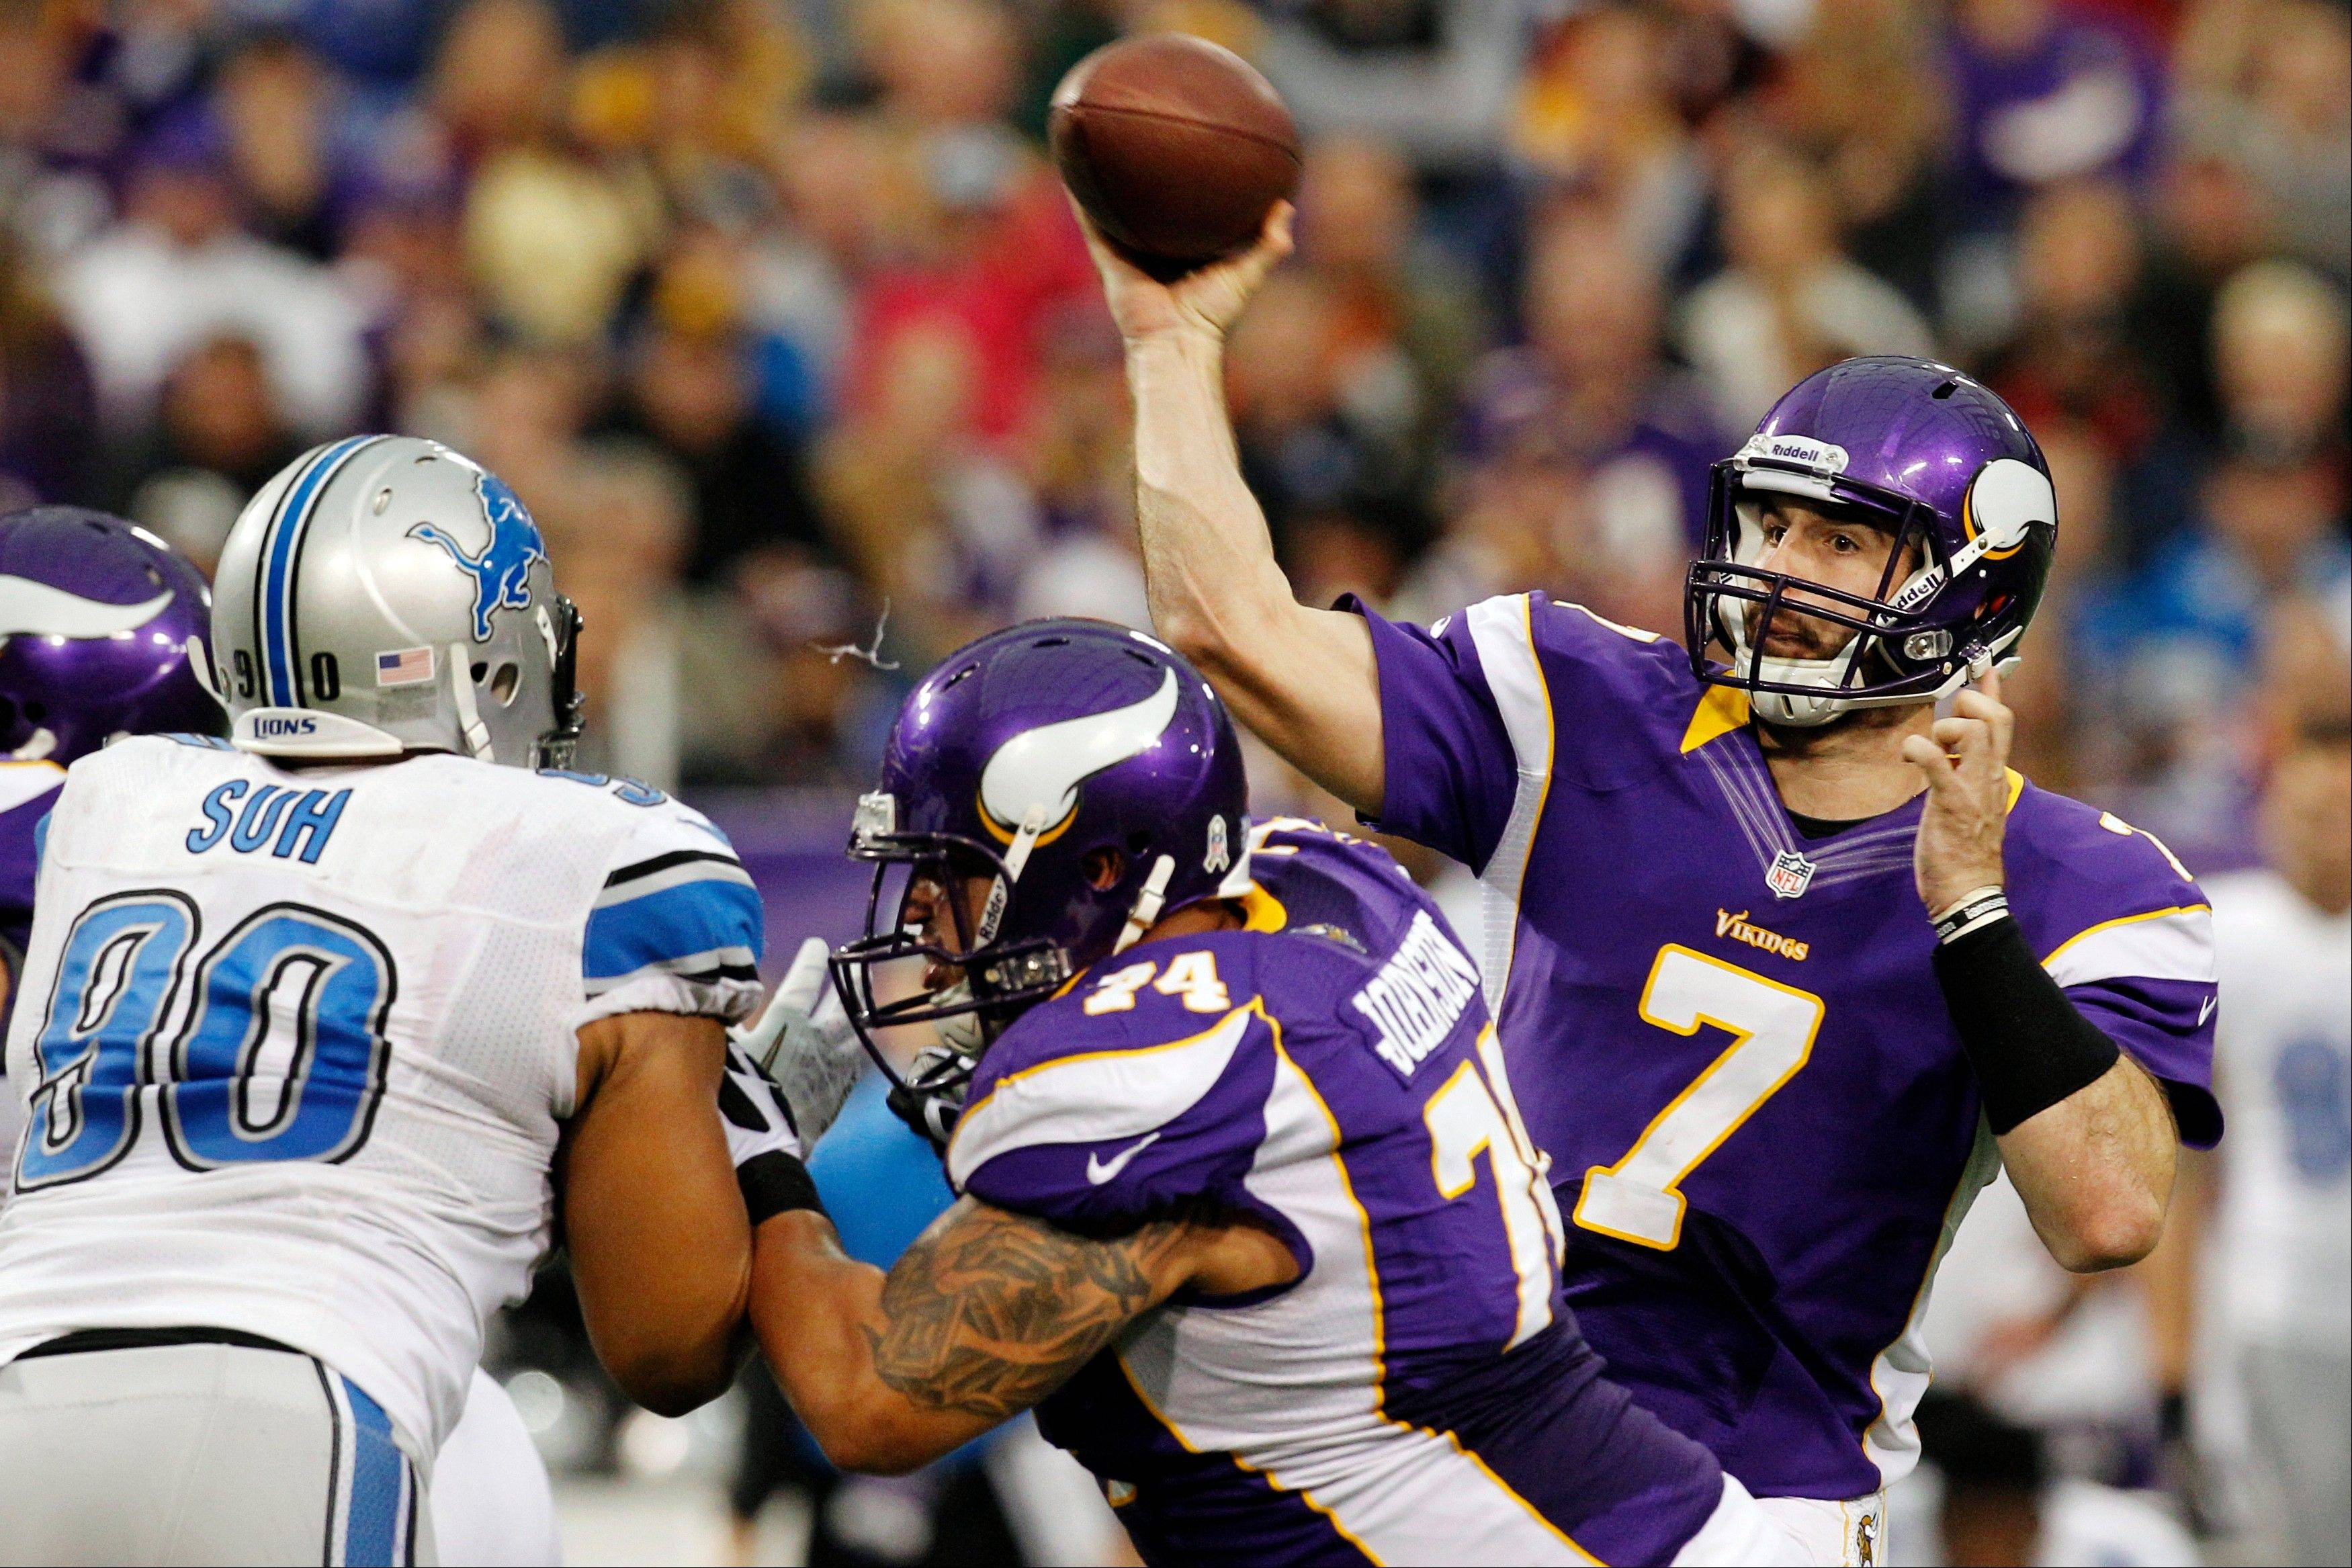 Minnesota Vikings quarterback Christian Ponder throws a pass Sunday during the second half against the Detroit Lions in Minneapolis. Ponder�s up-and-down season hasn�t done a thing to shake the organization�s confidence in him, GM Rick Spielman said.